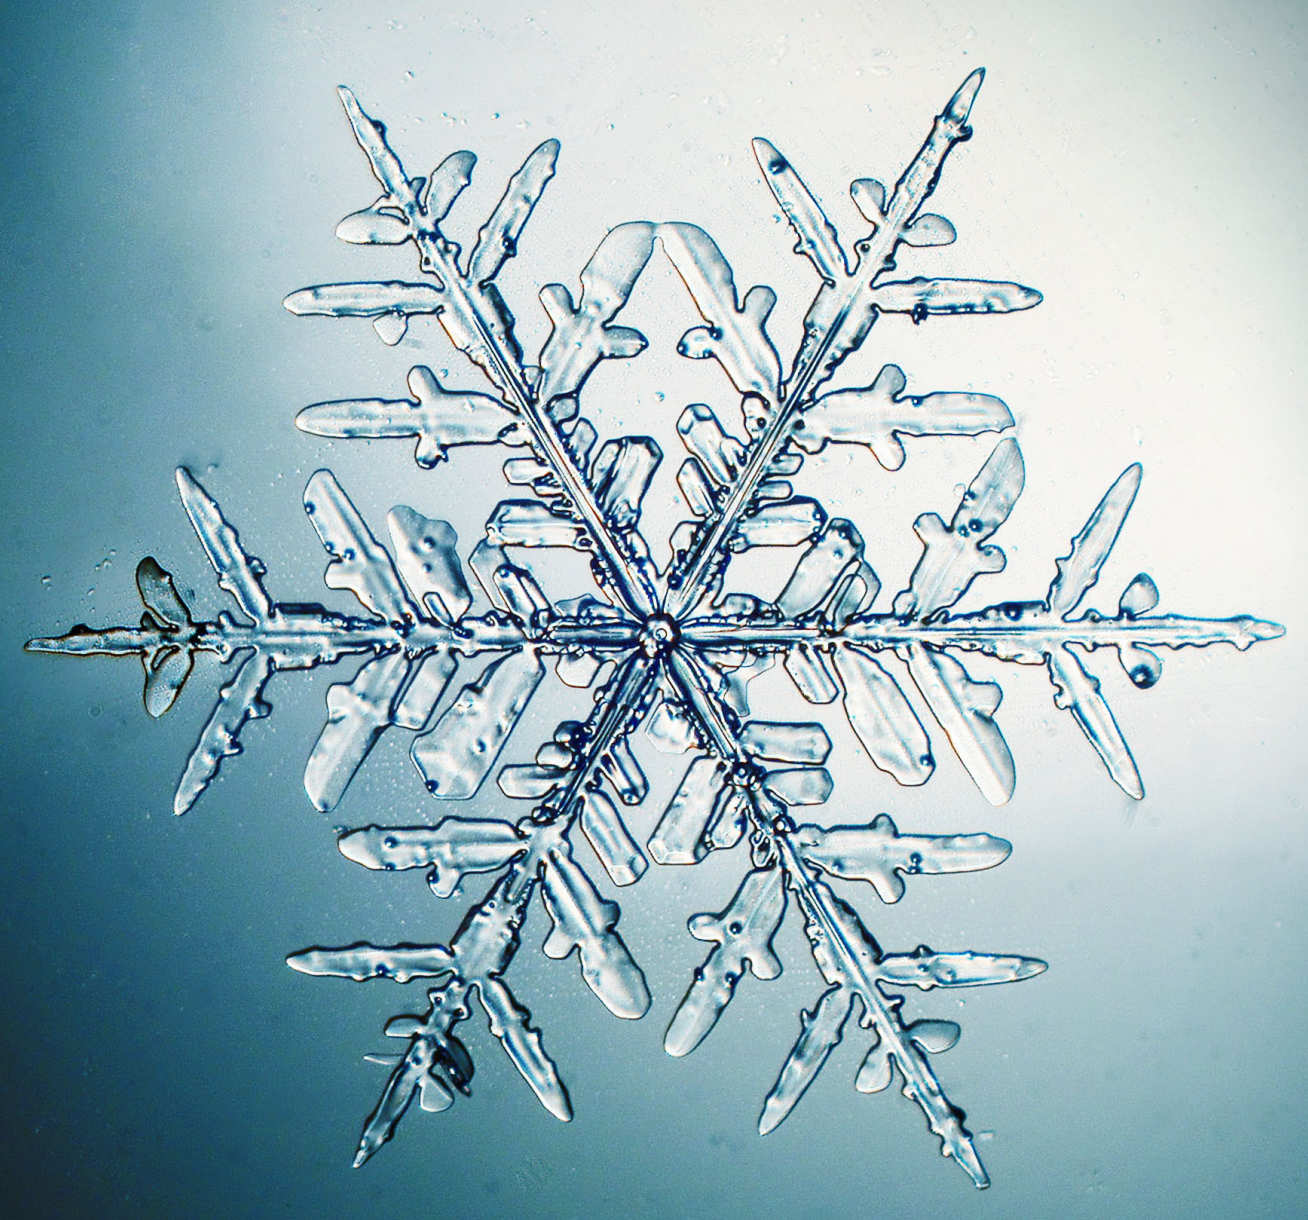 The self-repeating patterns reflect fractals in nature, like in snowflakes or lightning bolts.